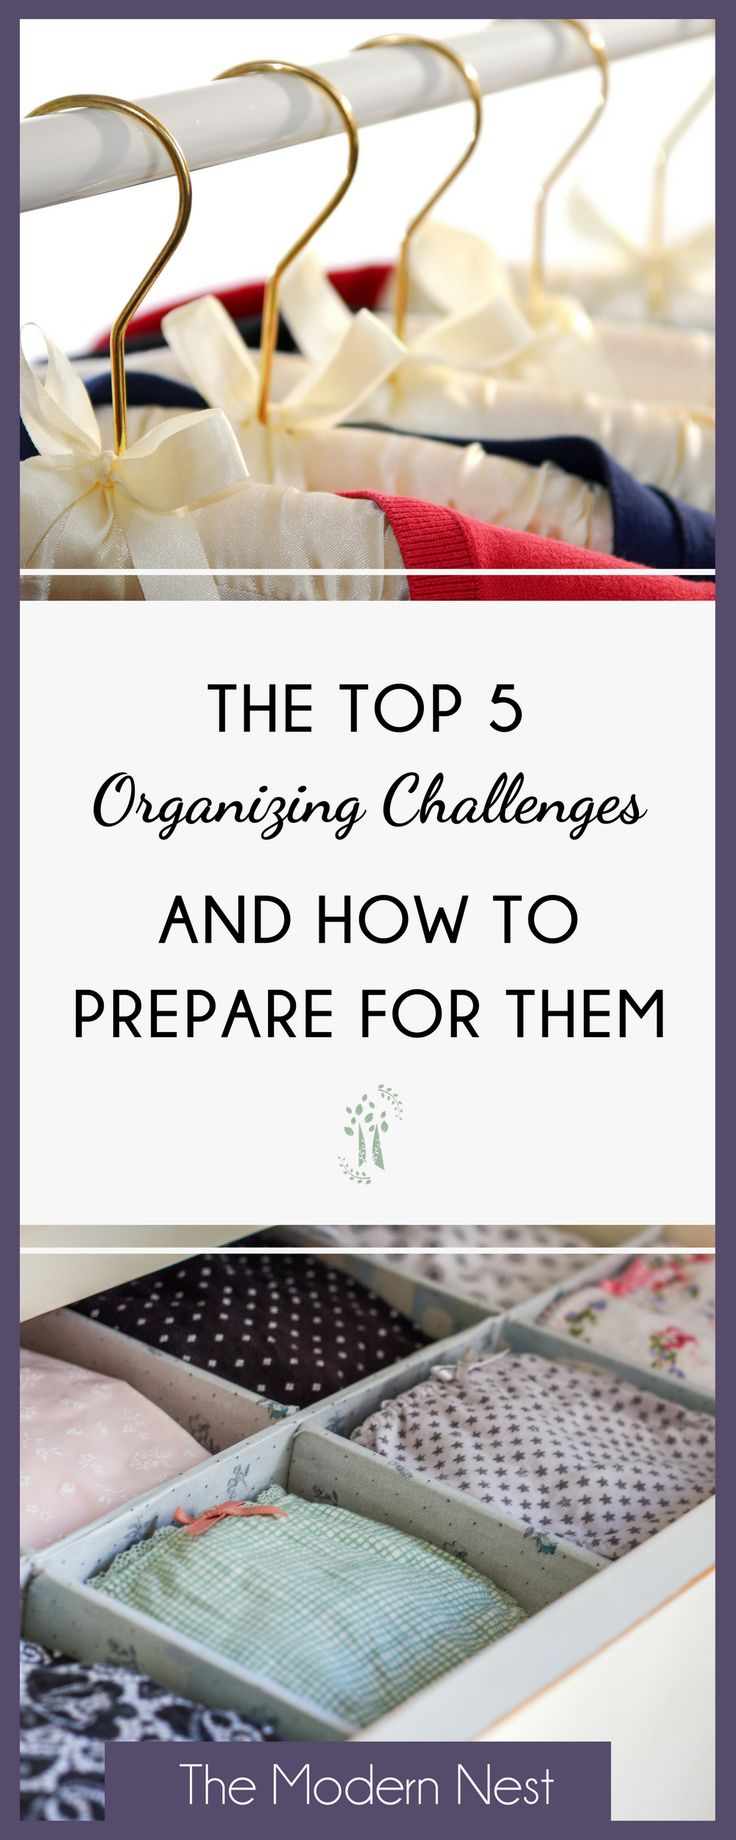 If you've ever spent time getting organized and had a hard time keeping it that way then this post is for you! Visit https://www.themodernnestblog.com/?p=567 to learn more about the top five organizing challenges and how you can plan for them so you stay organized for good! #organization #homeorganization